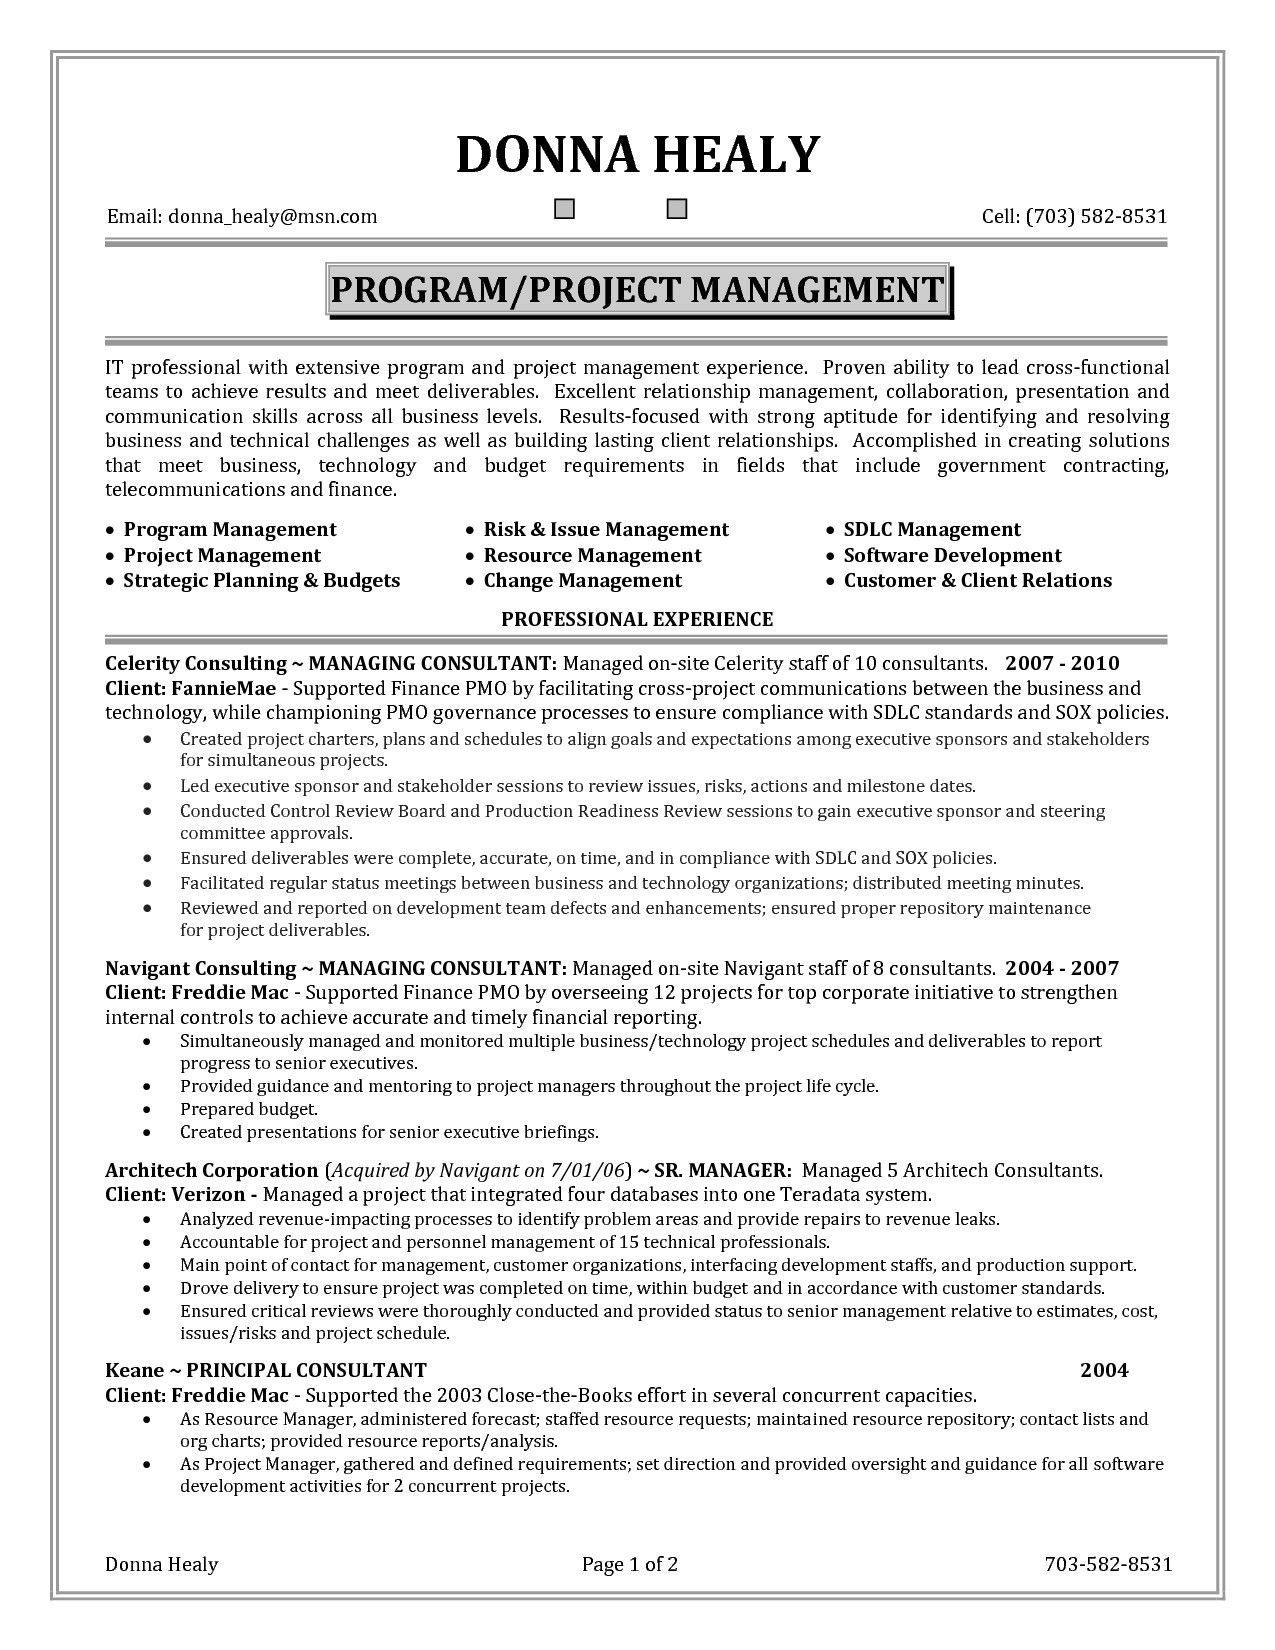 Financial Analysis Report Sample Project Manager Resume Time Management Skills Resume Skills